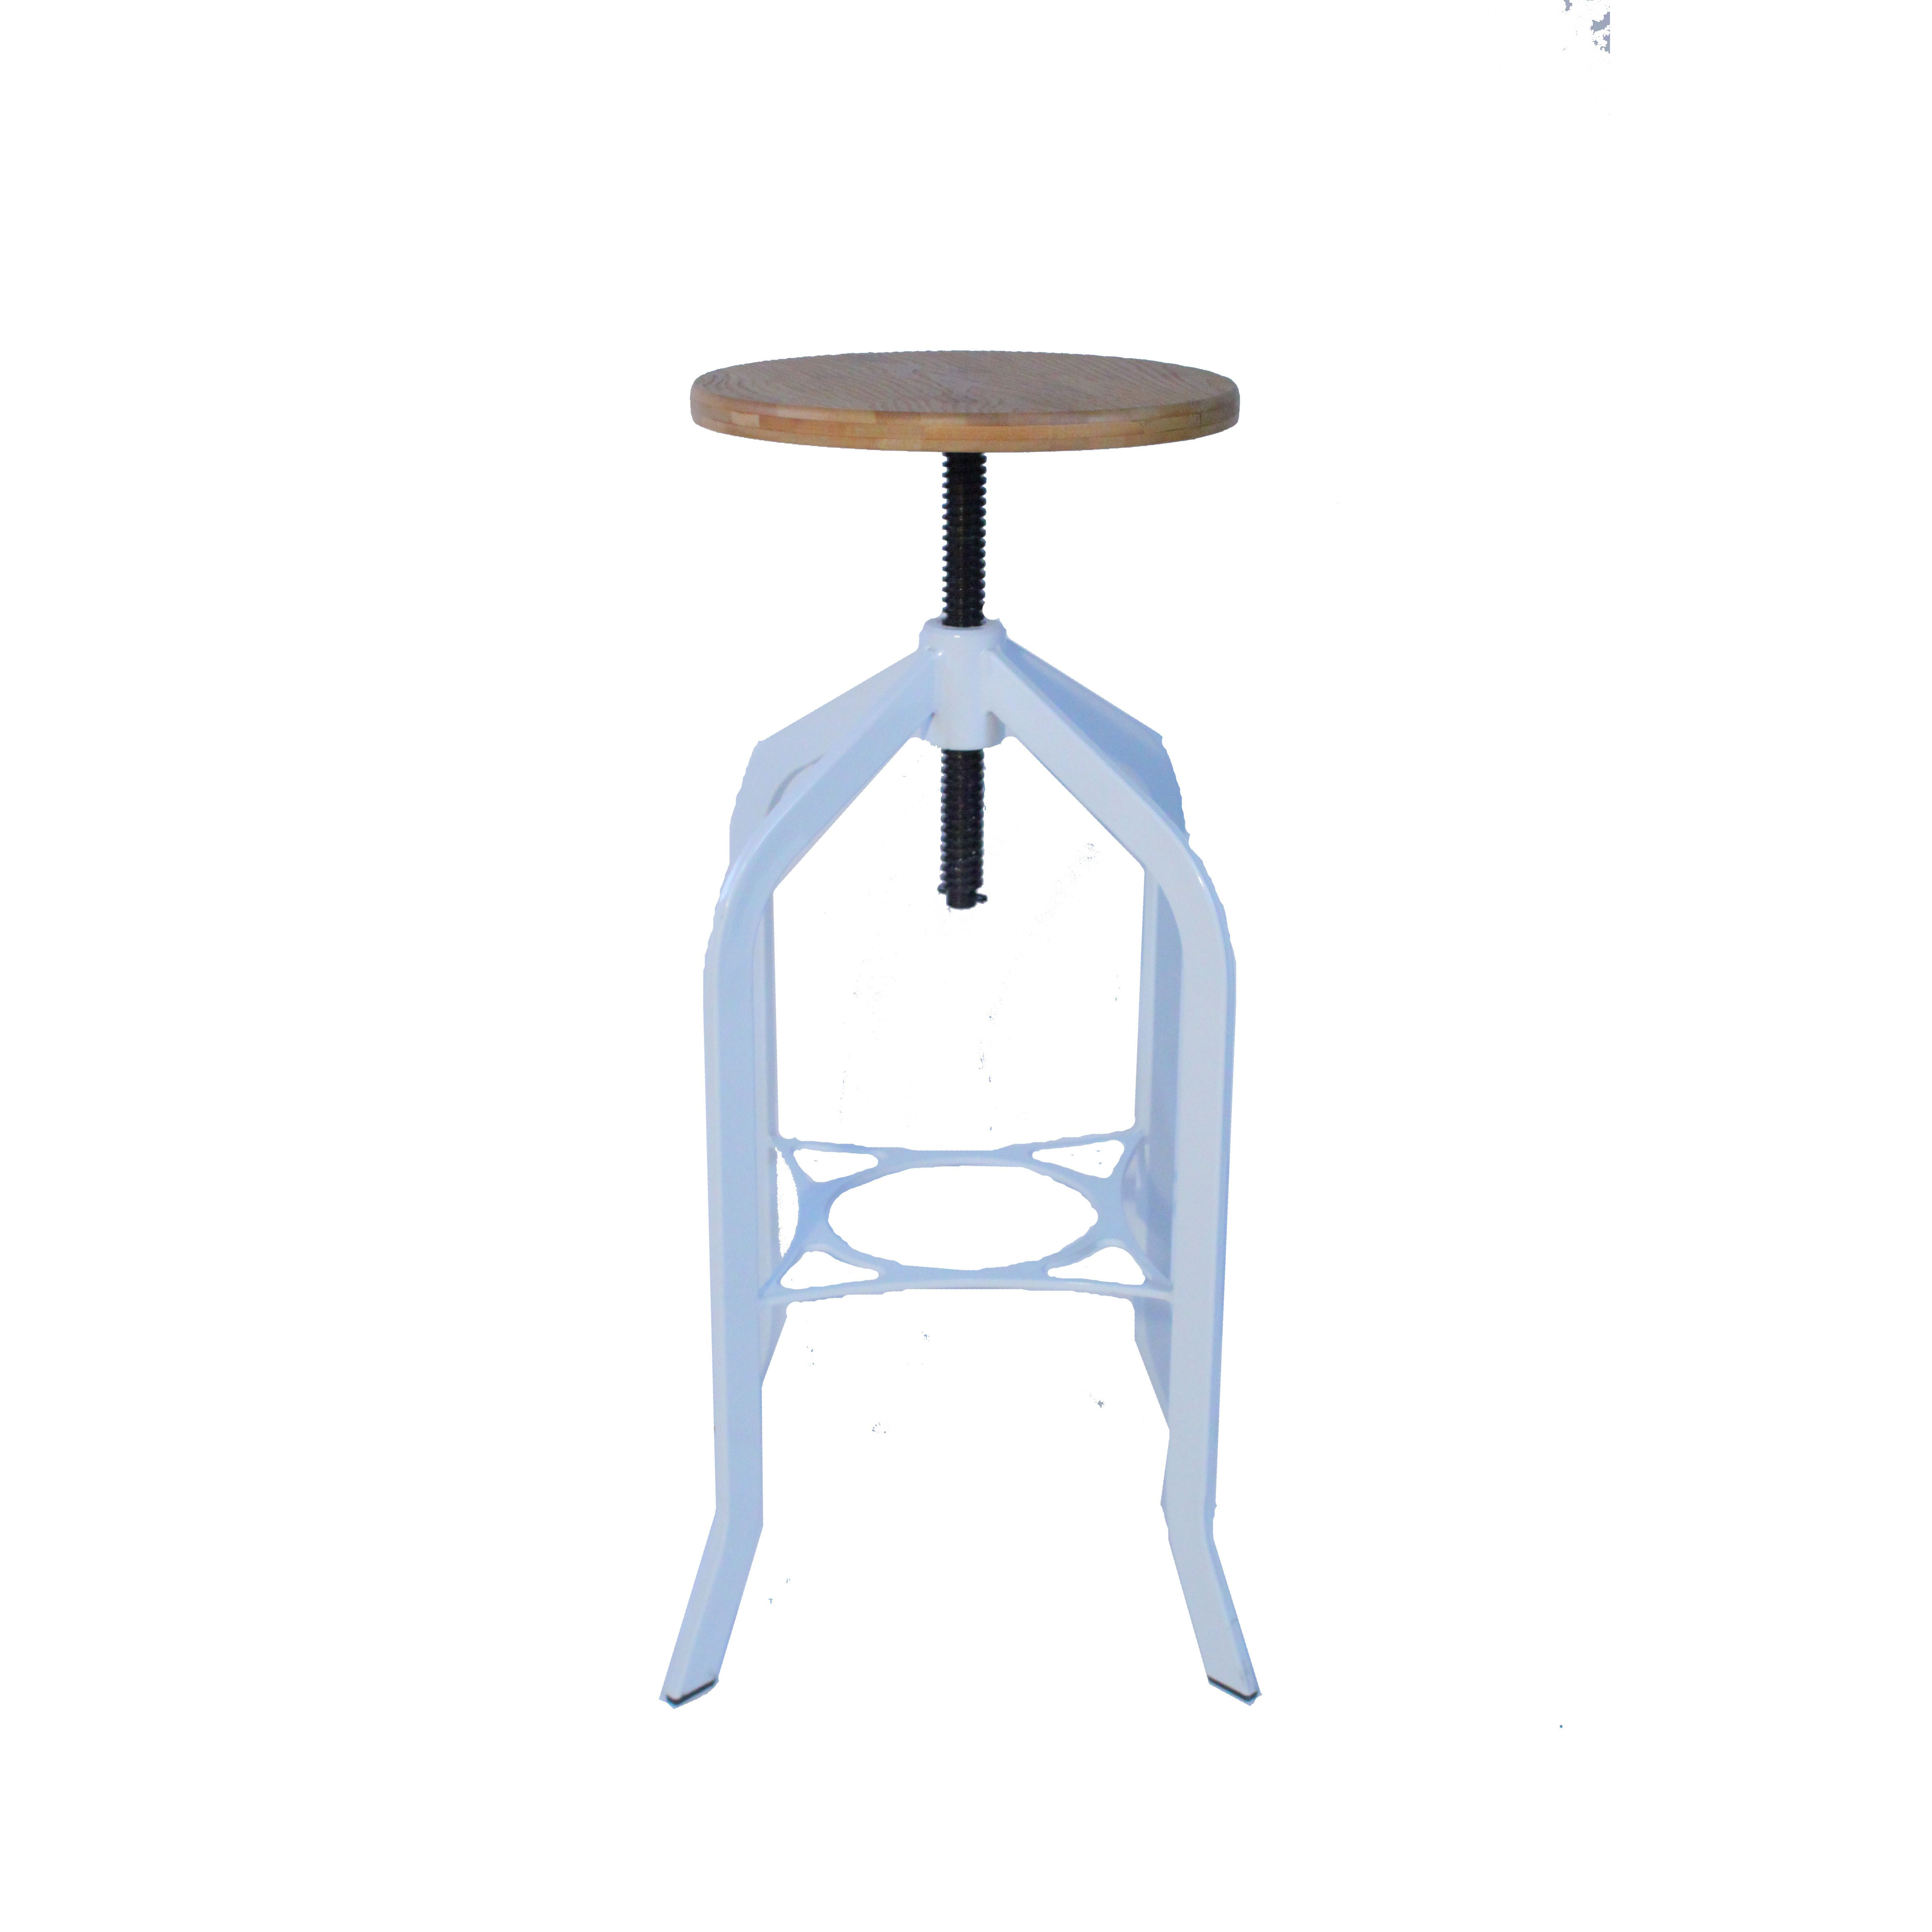 Trento Vintage Bar Stool - White